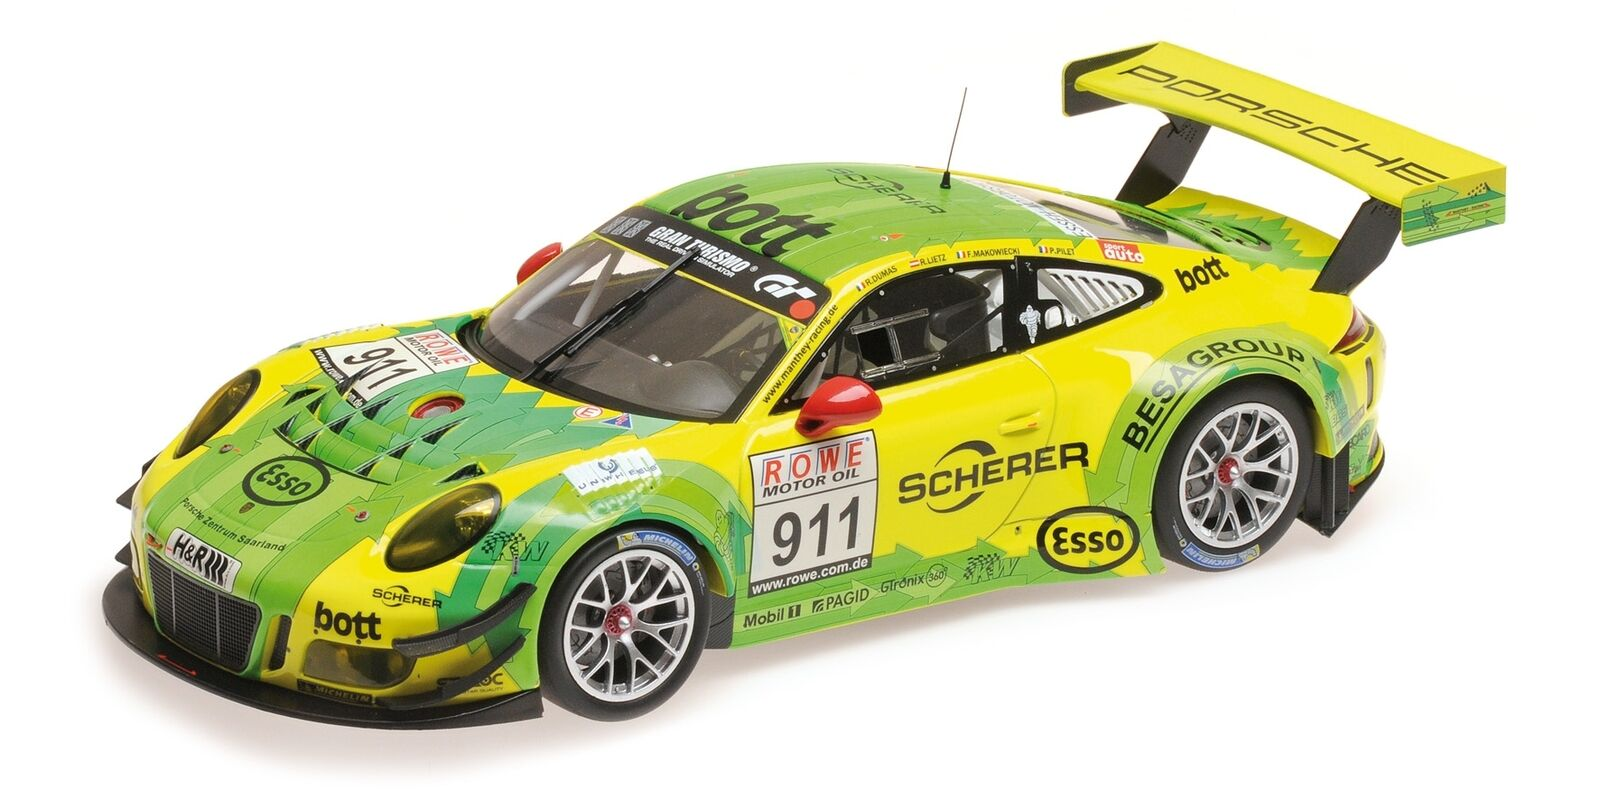 Porsche 911 GT3 R Manthey Racing Winners DMV 4h Rennen VLN 2017 1:18 Minichamps